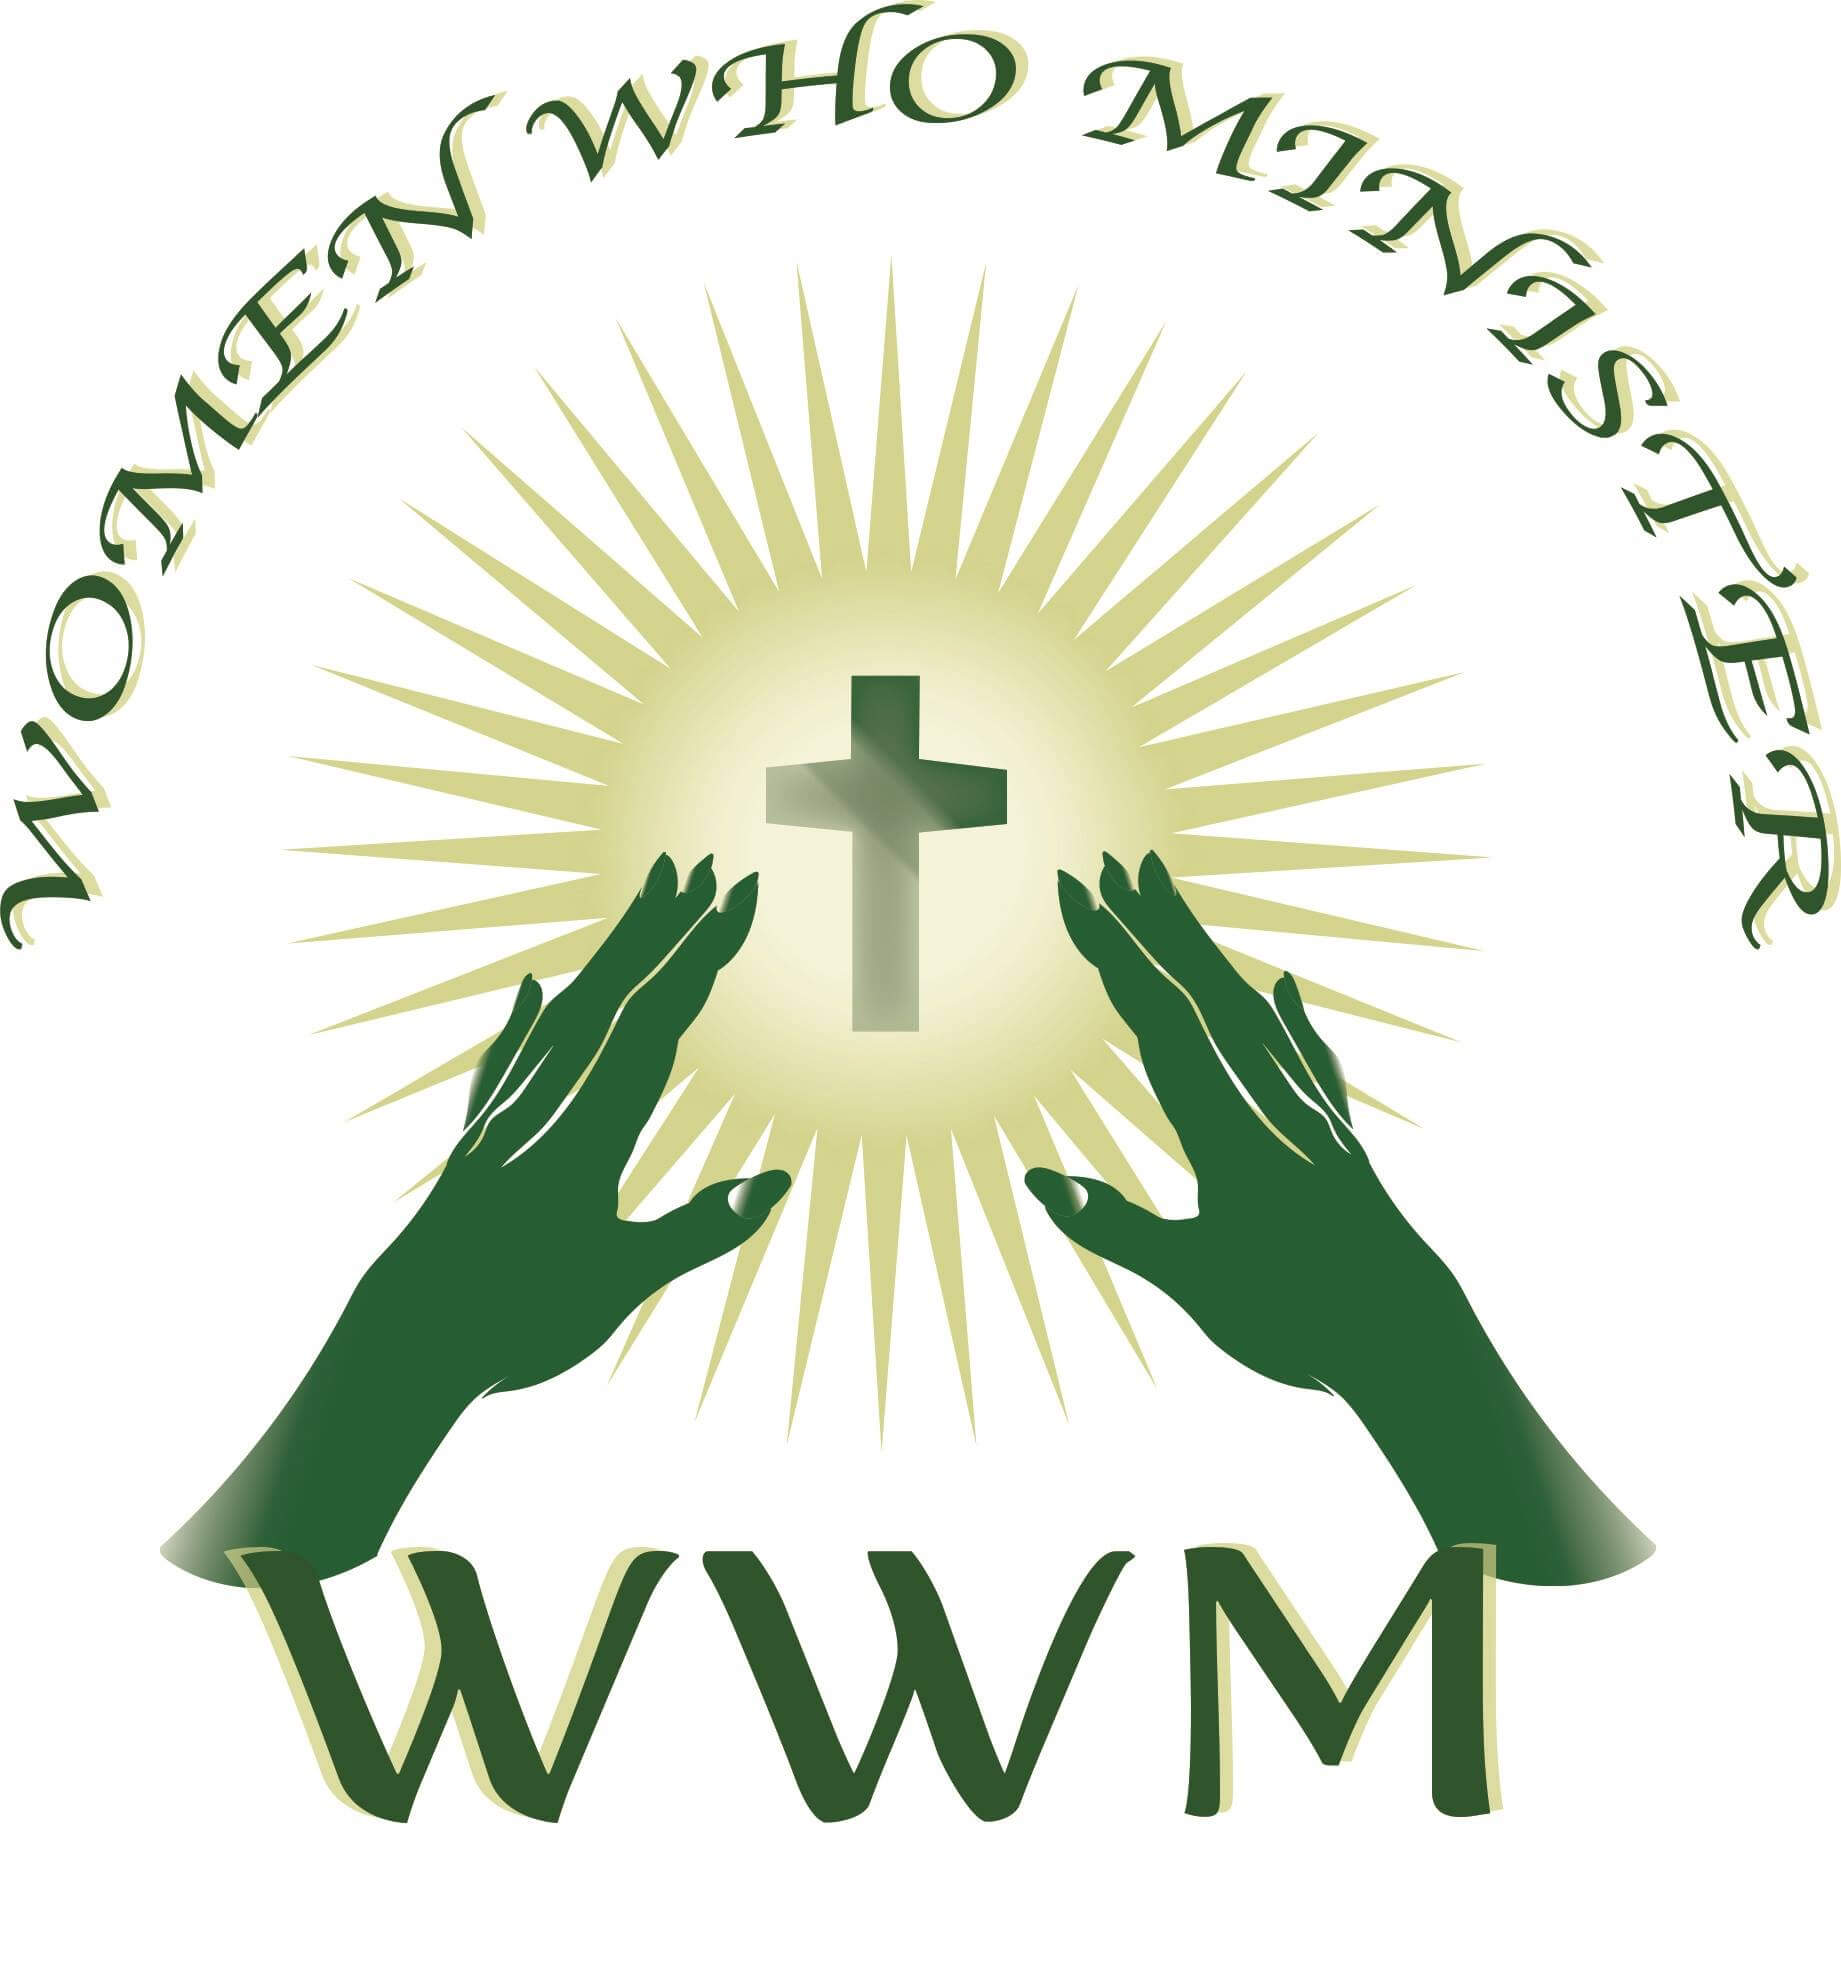 https://weightlosstransformation.com/wp-content/uploads/2019/11/Women-Who-Minister-Annual-Conference-logo.jpg